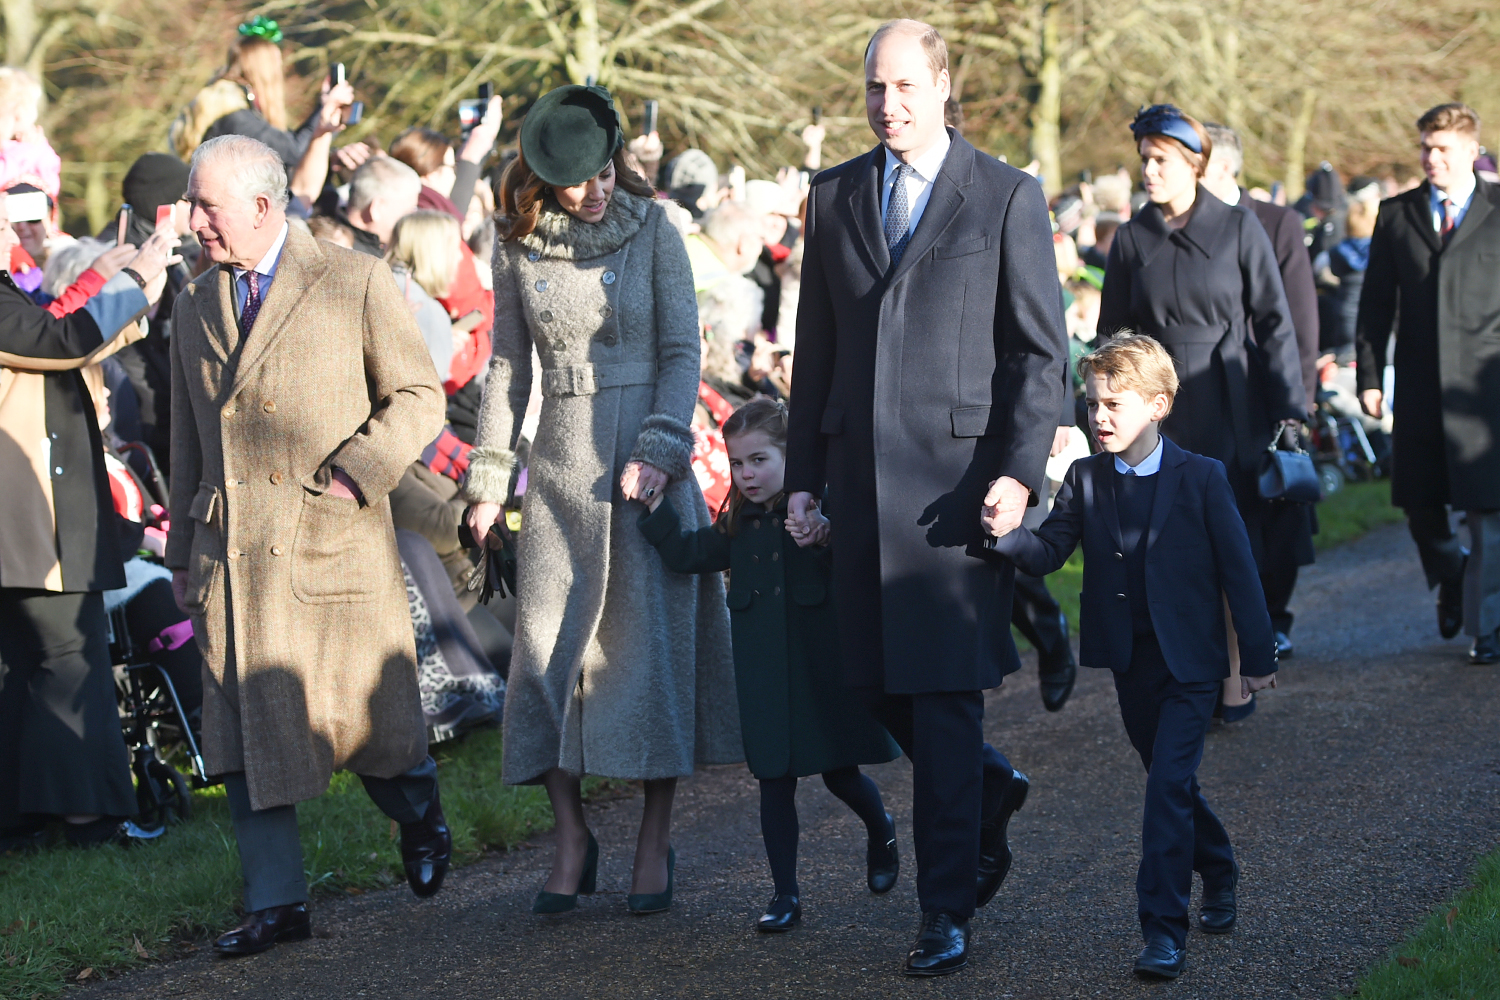 The Prince of Wales with the Duke and Duchess of Cambridge and their children Prince George and Princess Charlotte arriving to attend the Christmas Day morning church service at St Mary Magdalene Church in Sandringham, Norfolk. (Photo by Joe Giddens/PA Images via Getty Images)